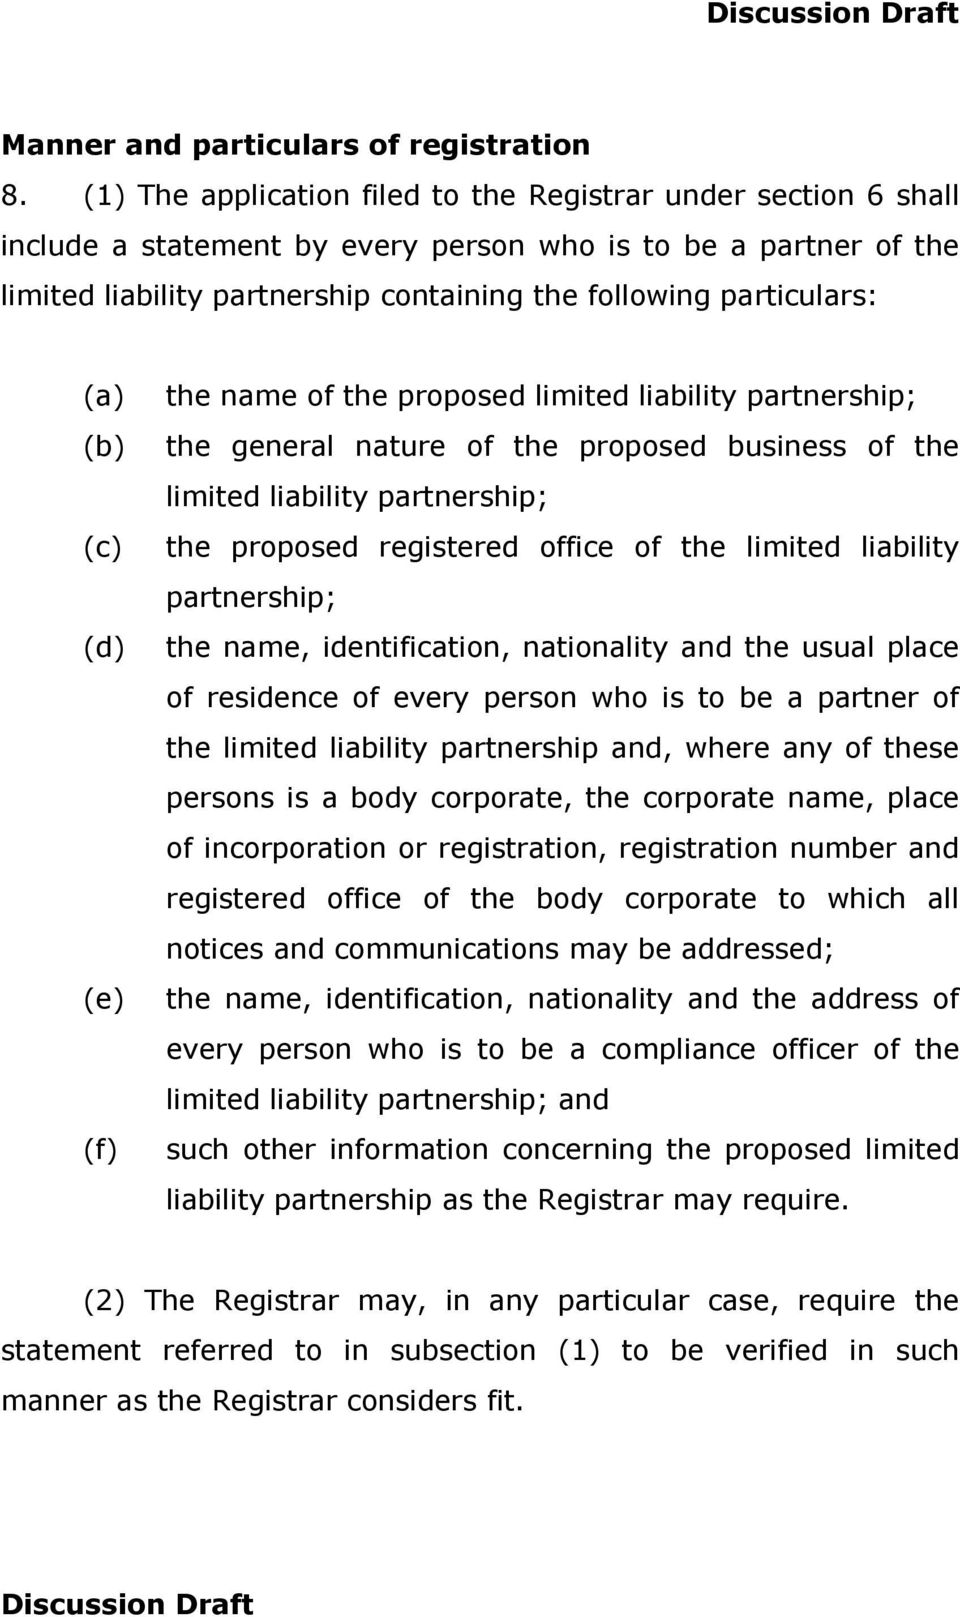 (a) (c) (d) (e) (f) the name of the proposed limited liability partnership; the general nature of the proposed business of the limited liability partnership; the proposed registered office of the